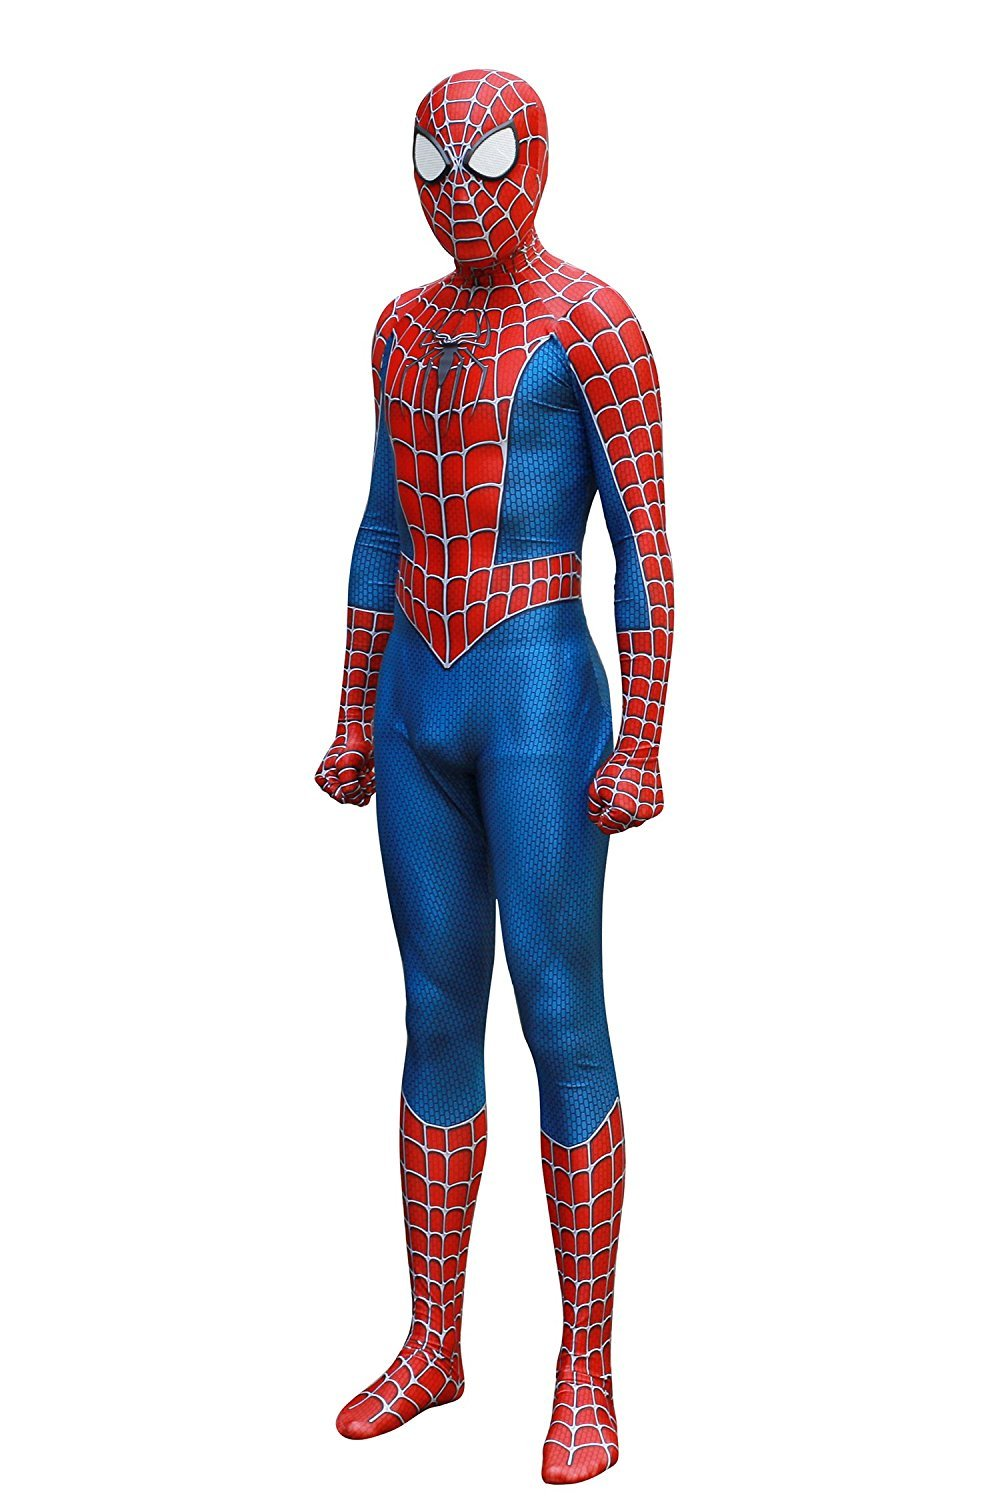 - 71wZL5roBmL - KILLYCOS Unisex Lycra Spandex Zentai Halloween Cosplay Costumes Adult/Kids 3D Style